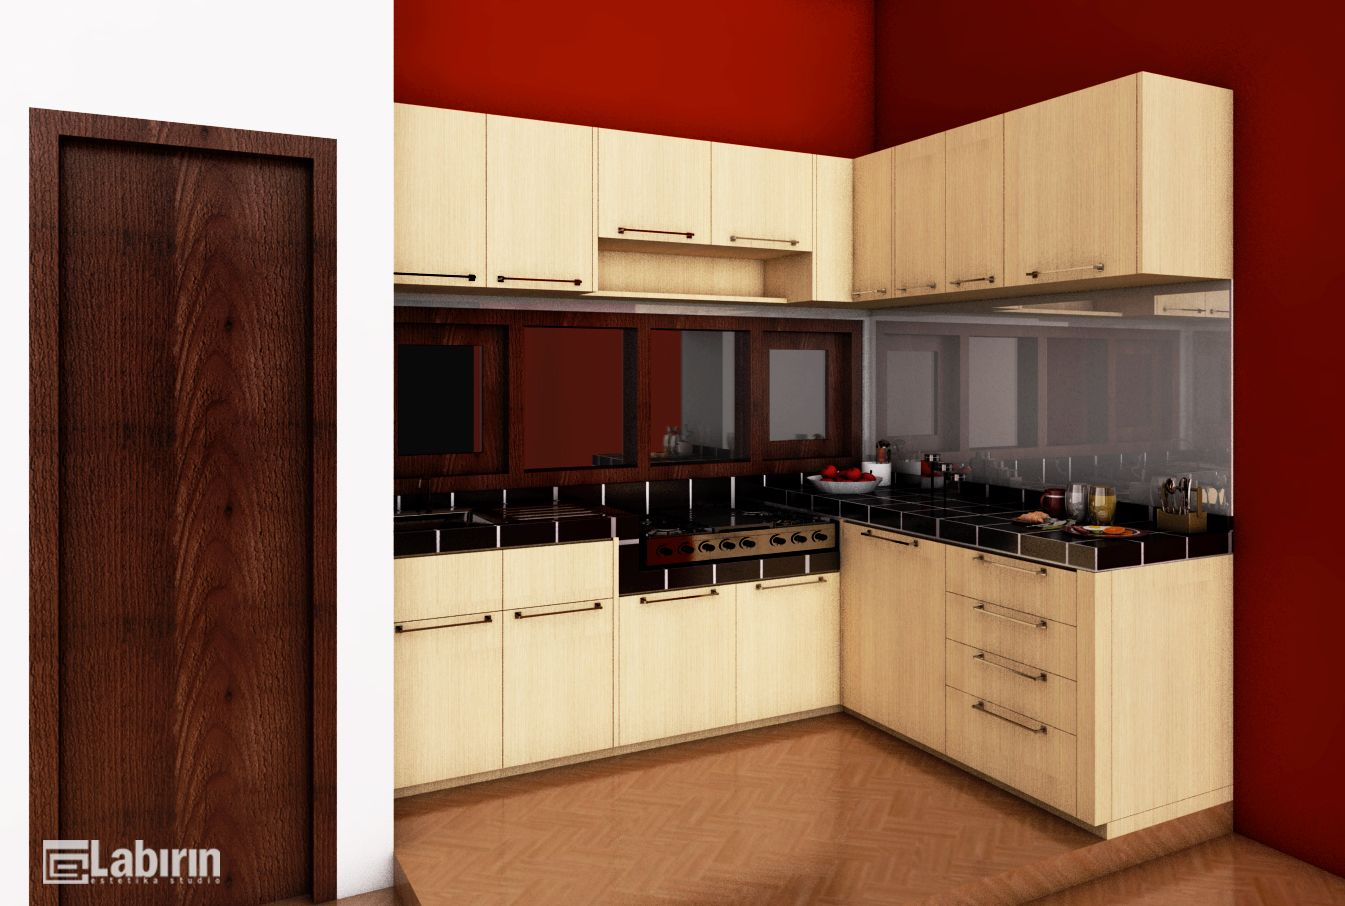 Kitchen Set Kayu Lapis on paint set, glass set, black set, bedroom set, house set, room set, entertainment set, tv set, restaurant set, cooking set, bar set, living set, lounge set, above ground pool set, beauty set, dinner set, sleep set, dining set, pots and pans set, office set,